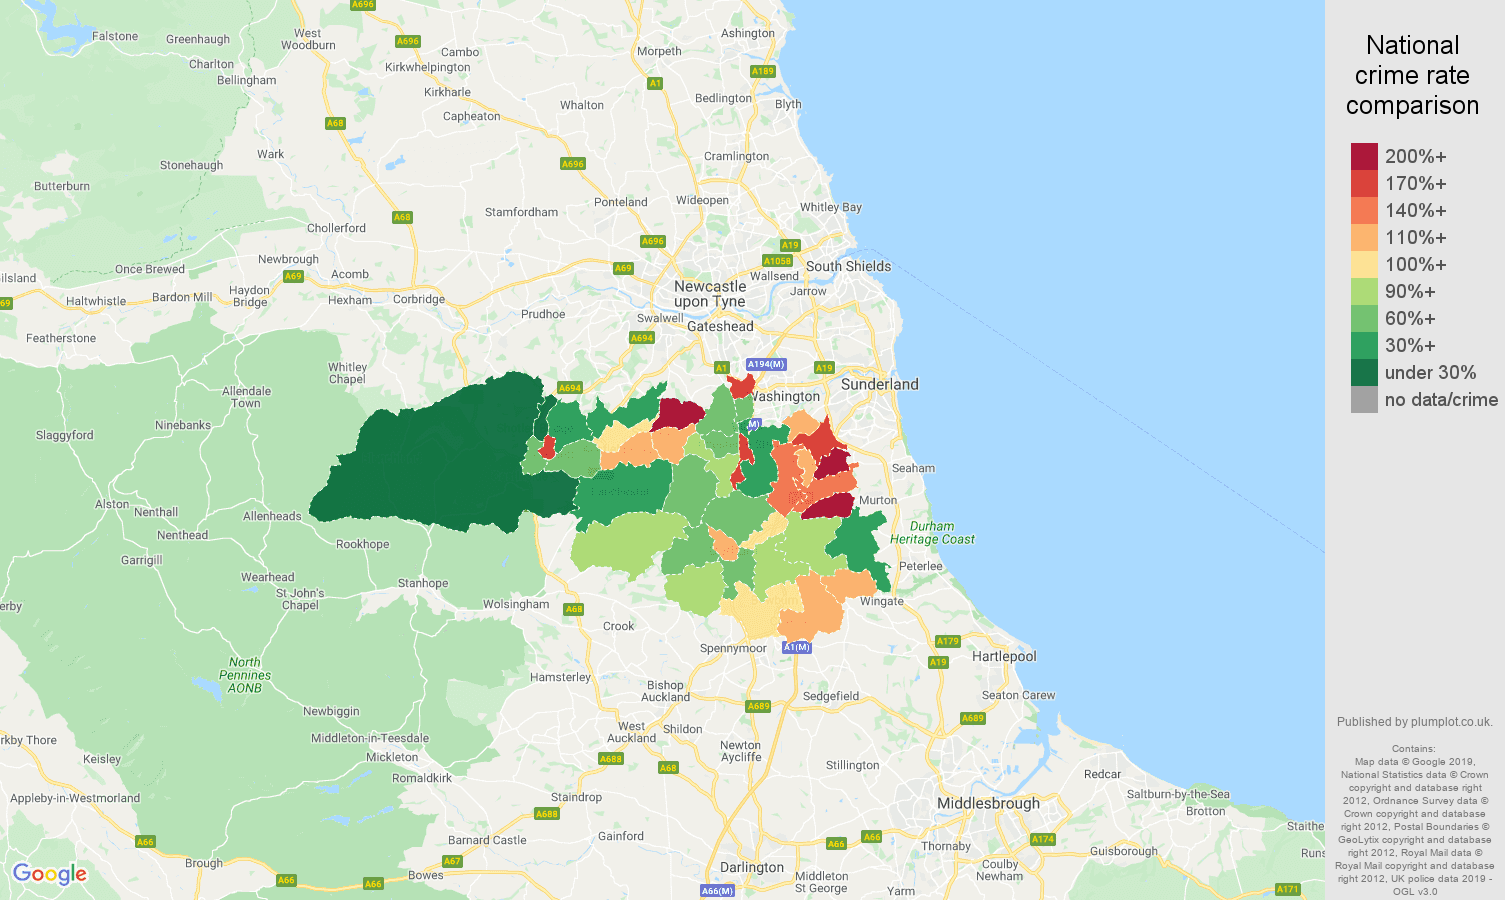 Durham public order crime rate comparison map